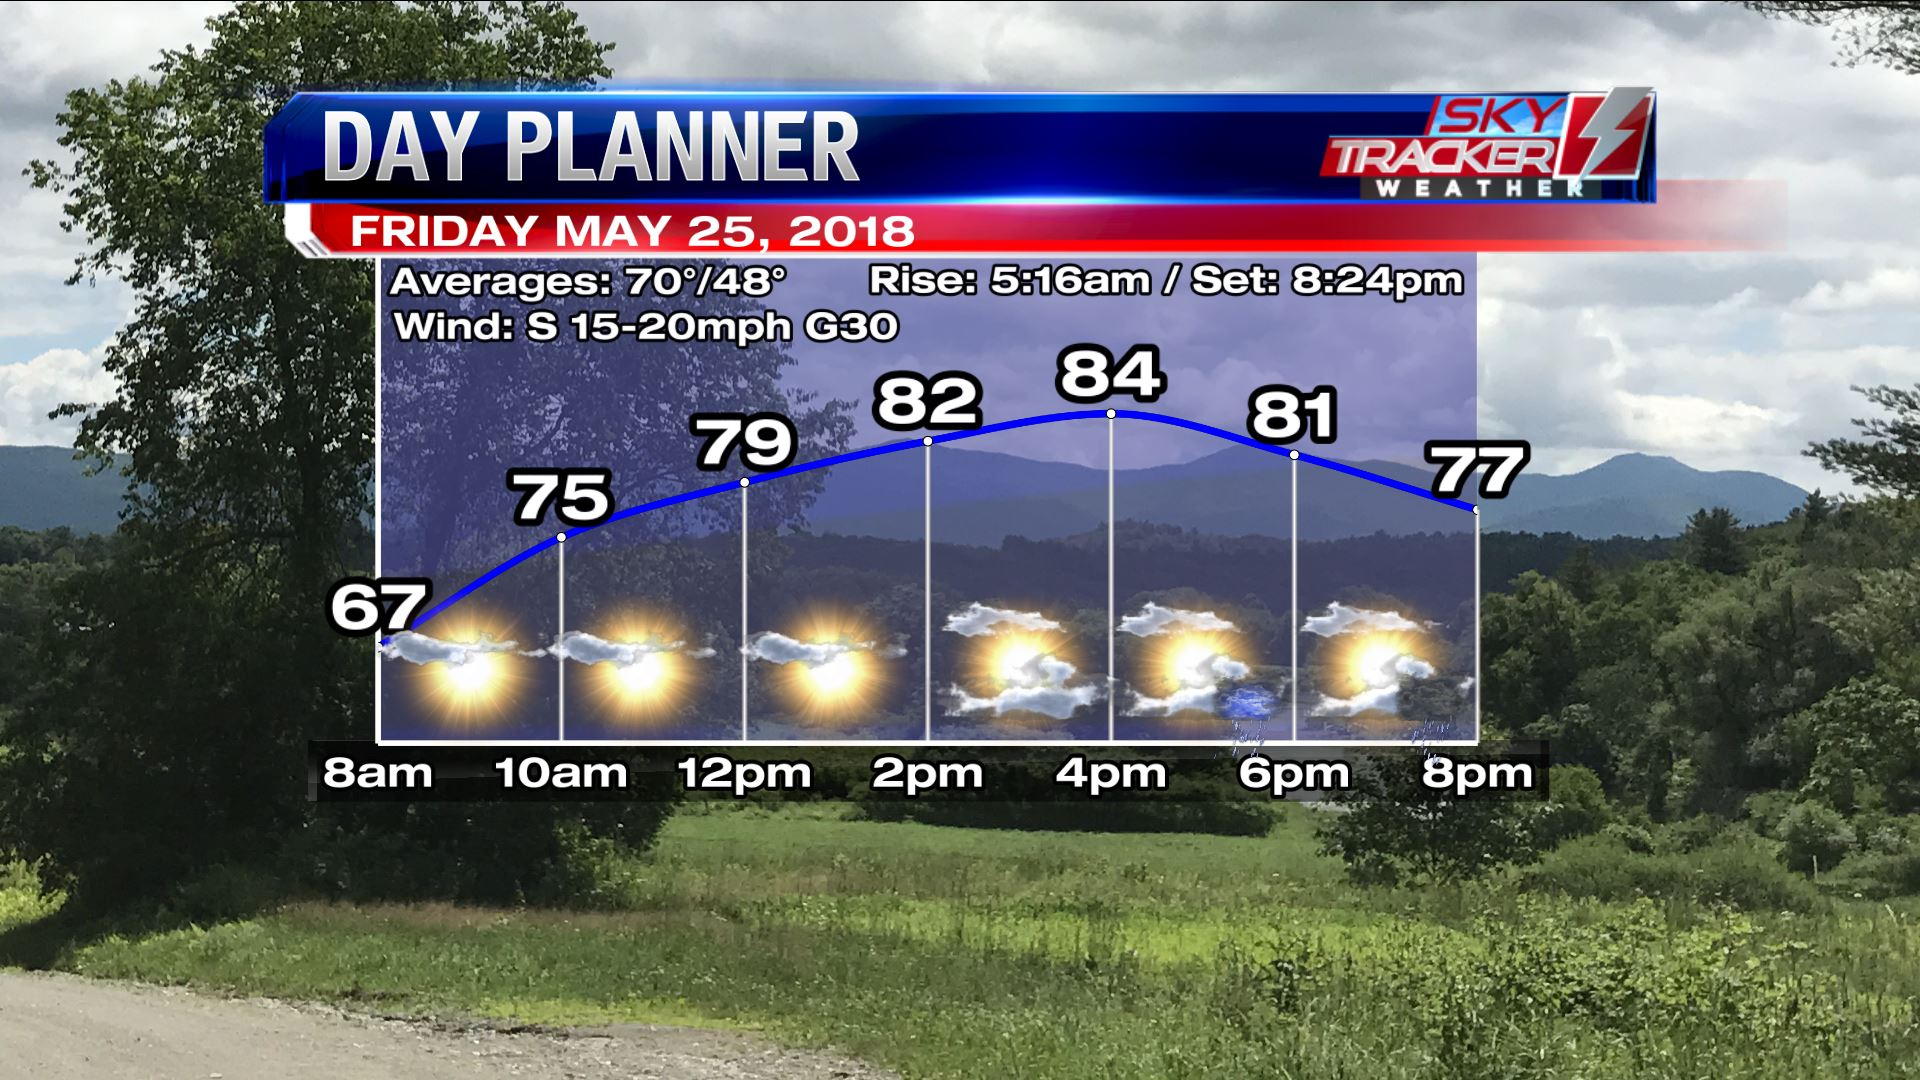 Planner for Friday May 25 2018